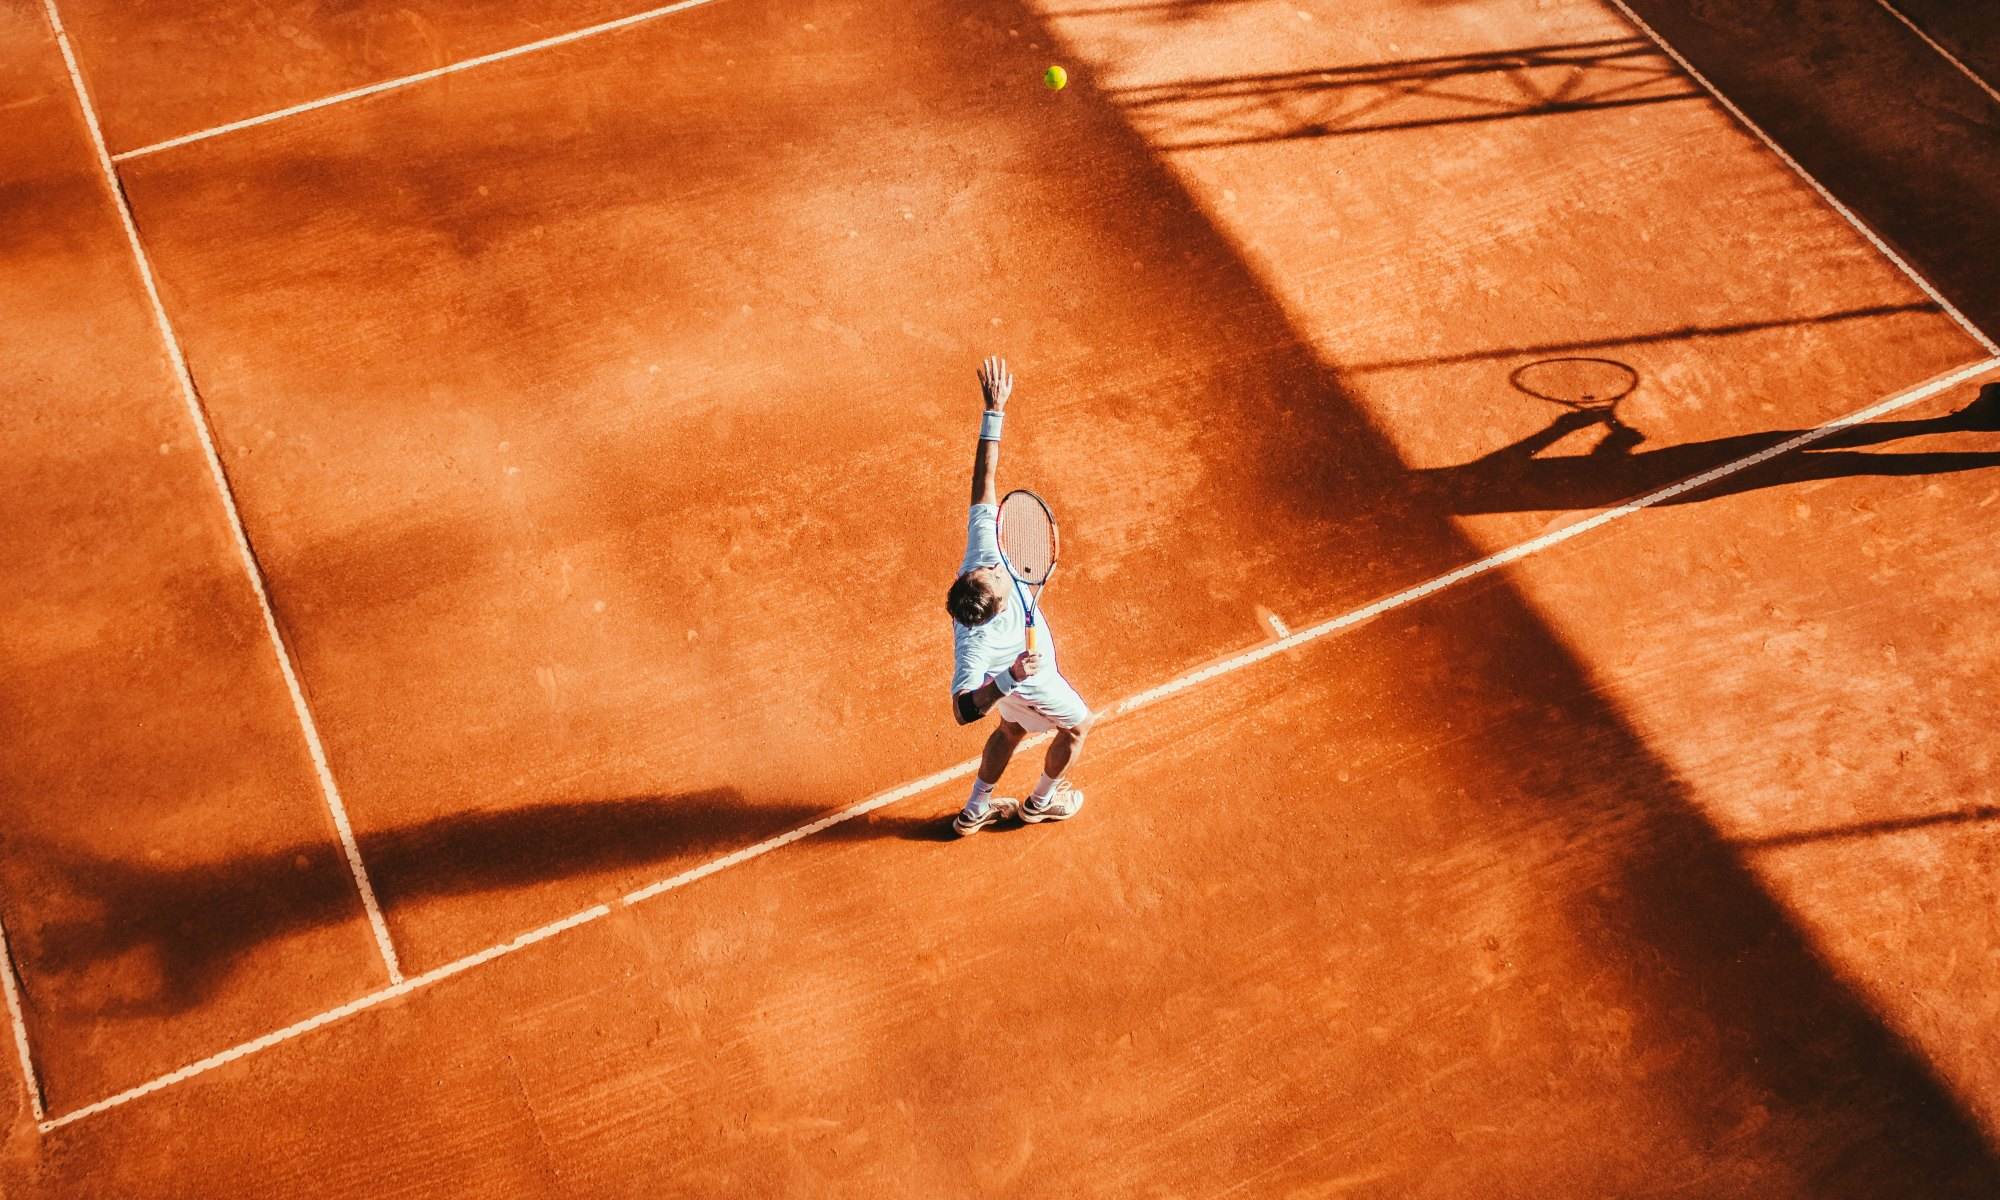 Man playing tennis on red clay courts